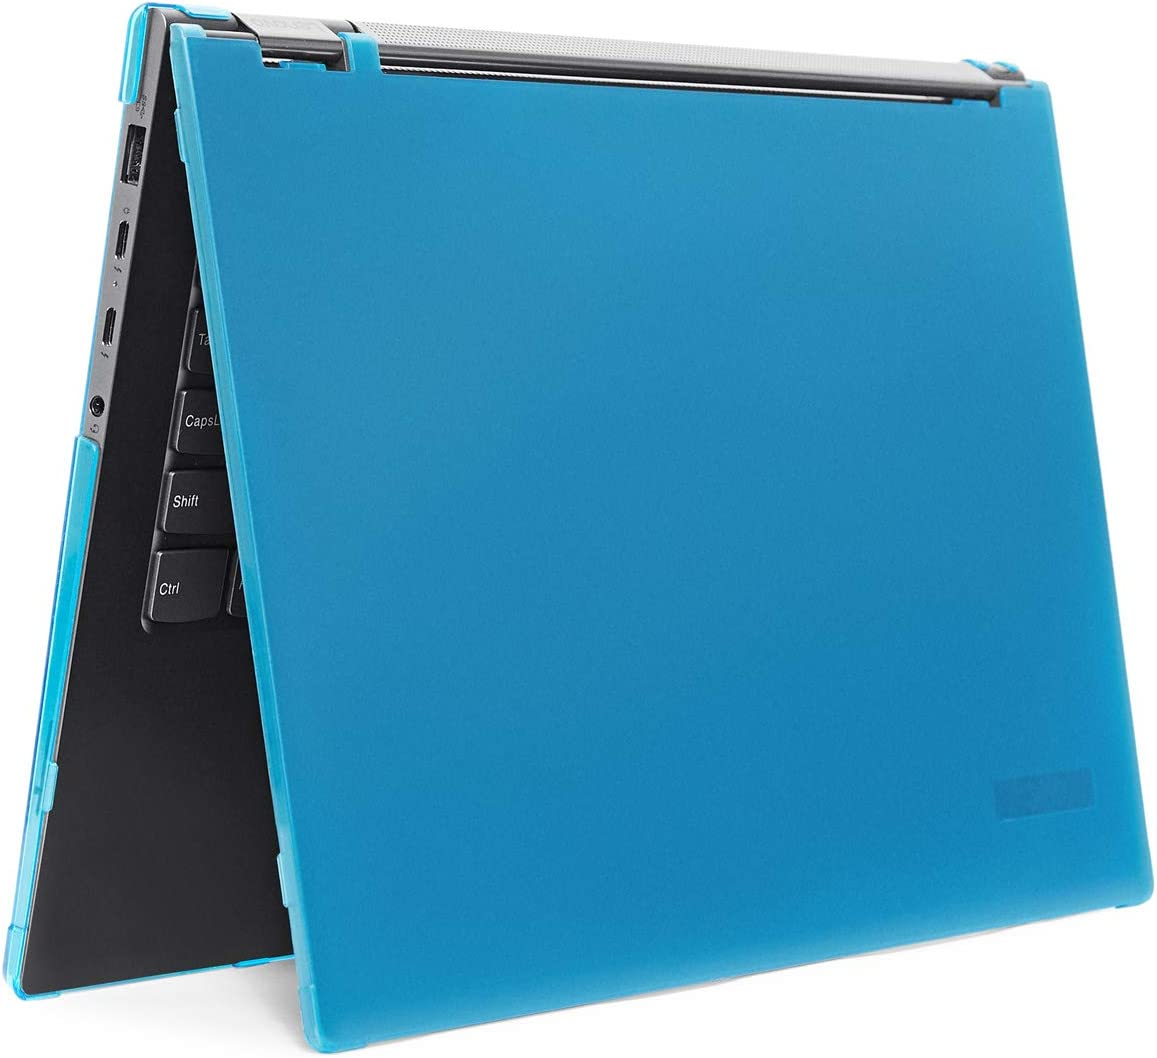 """mCover Hard Shell Case for 2019 15.6"""" Lenovo Yoga Chromebook C630 Series 2-in-1 Laptop Computer (NOT Fitting Other Lenovo Yoga/Chromebook laptops) (Yoga-CB-C630 Aqua)"""